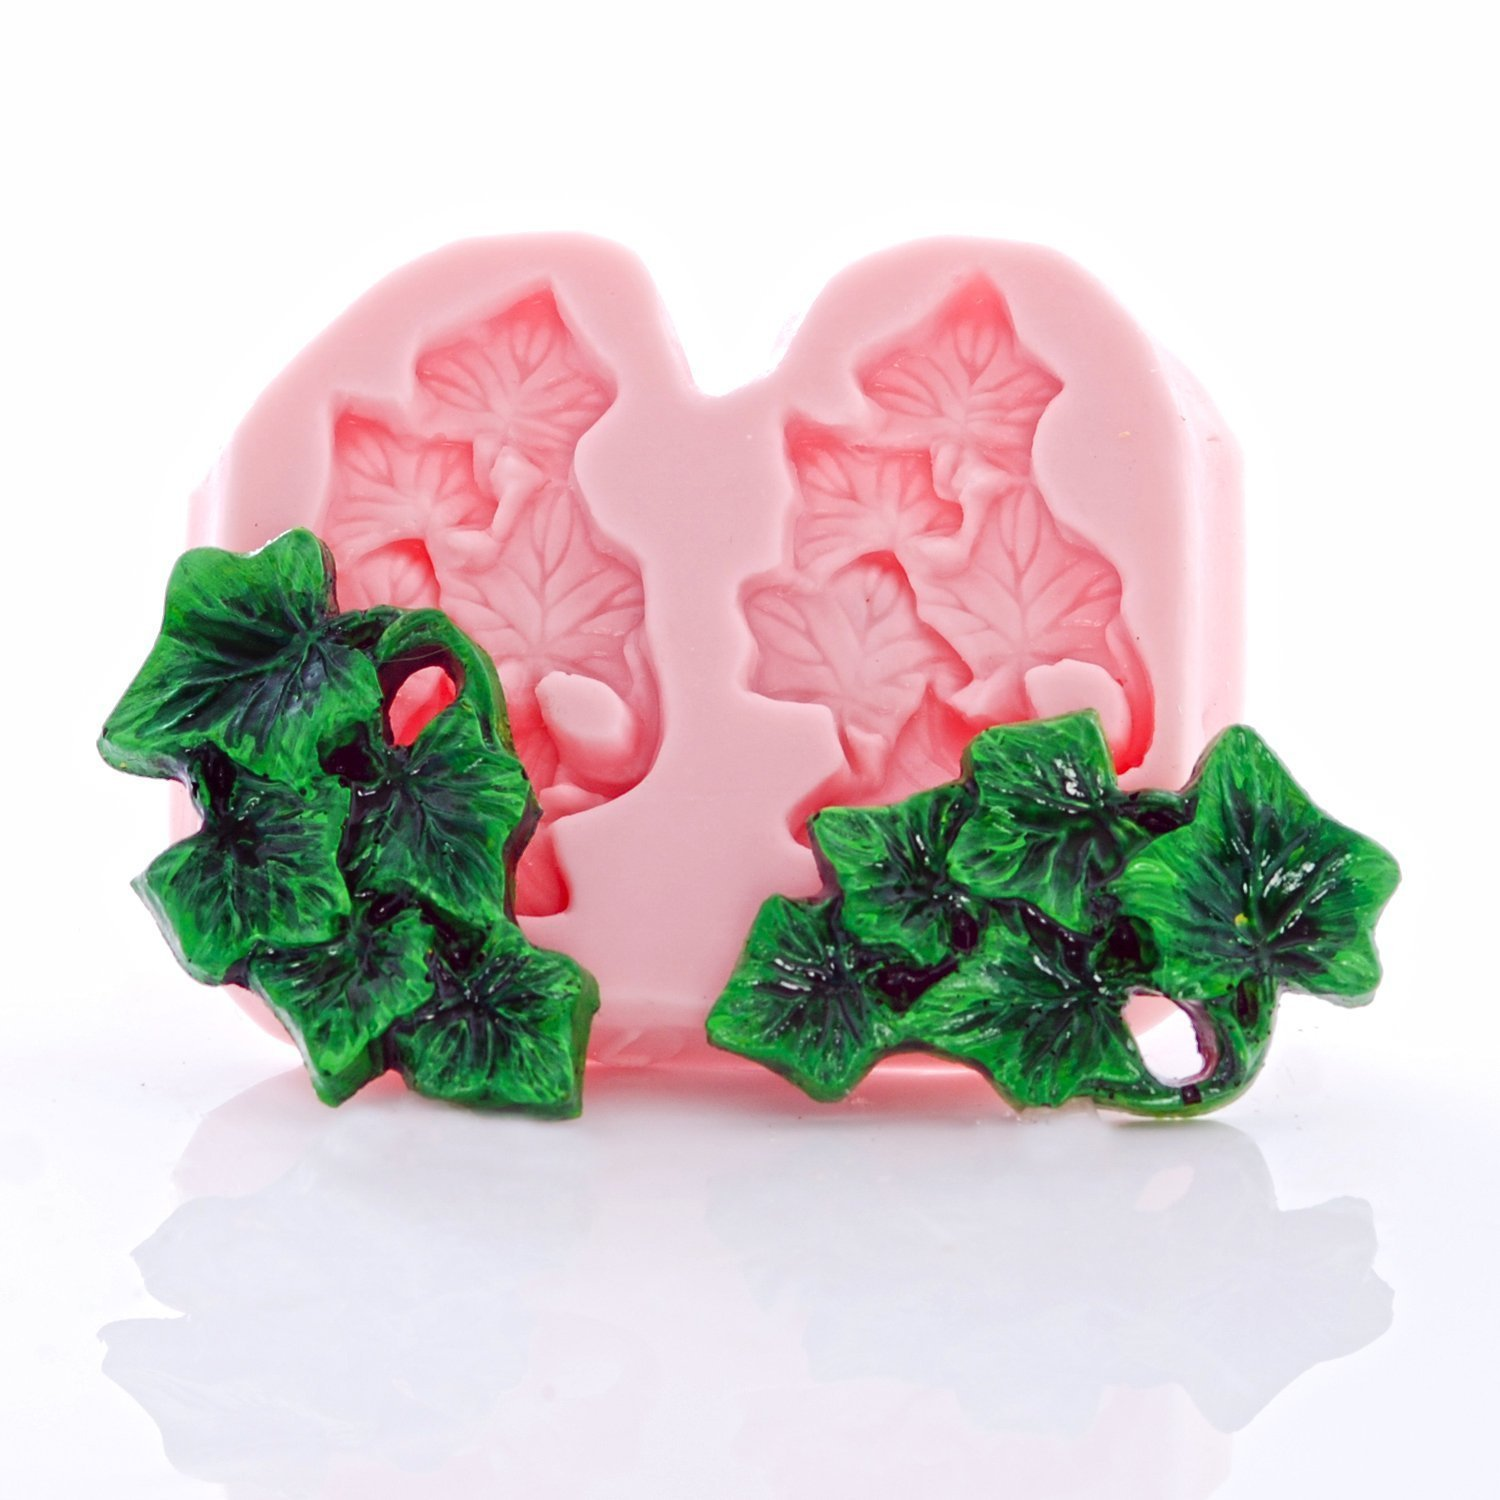 Ivy Leaf Cluster Silicone Mold Food Safe Fondant, Chocolate, Candy, Resin, Polymer Clay Mold